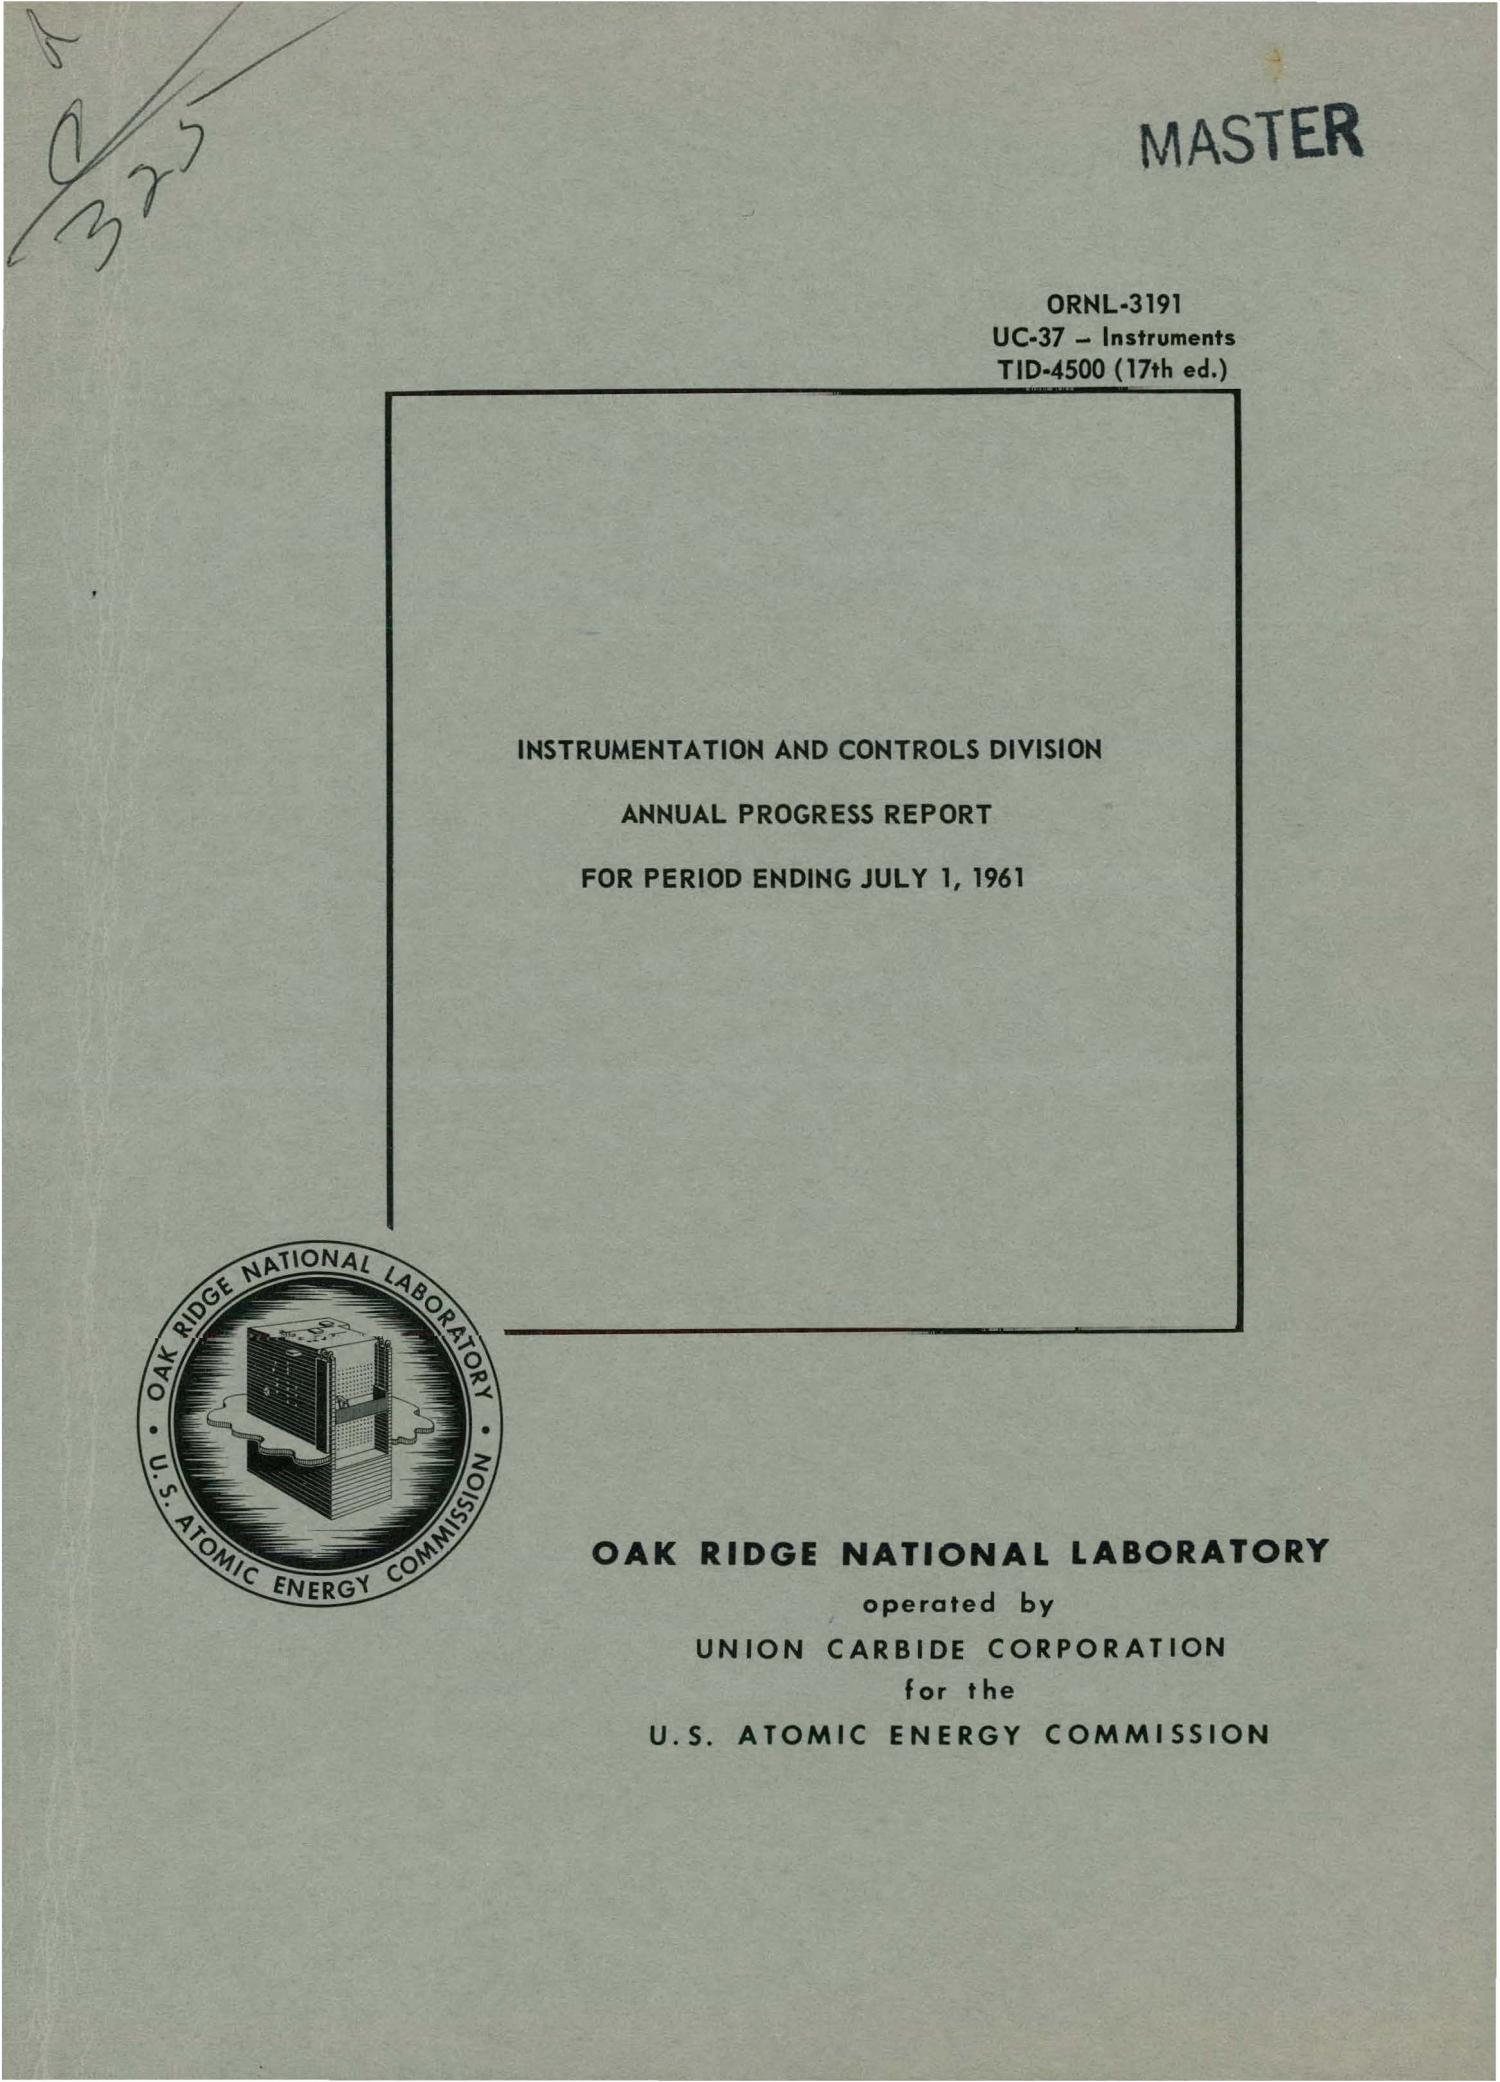 INSTRUMENTATION AND CONTROLS DIVISION ANNUAL PROGRESS REPORT FOR PERIOD ENDING JULY 1, 1961                                                                                                      [Sequence #]: 1 of 114